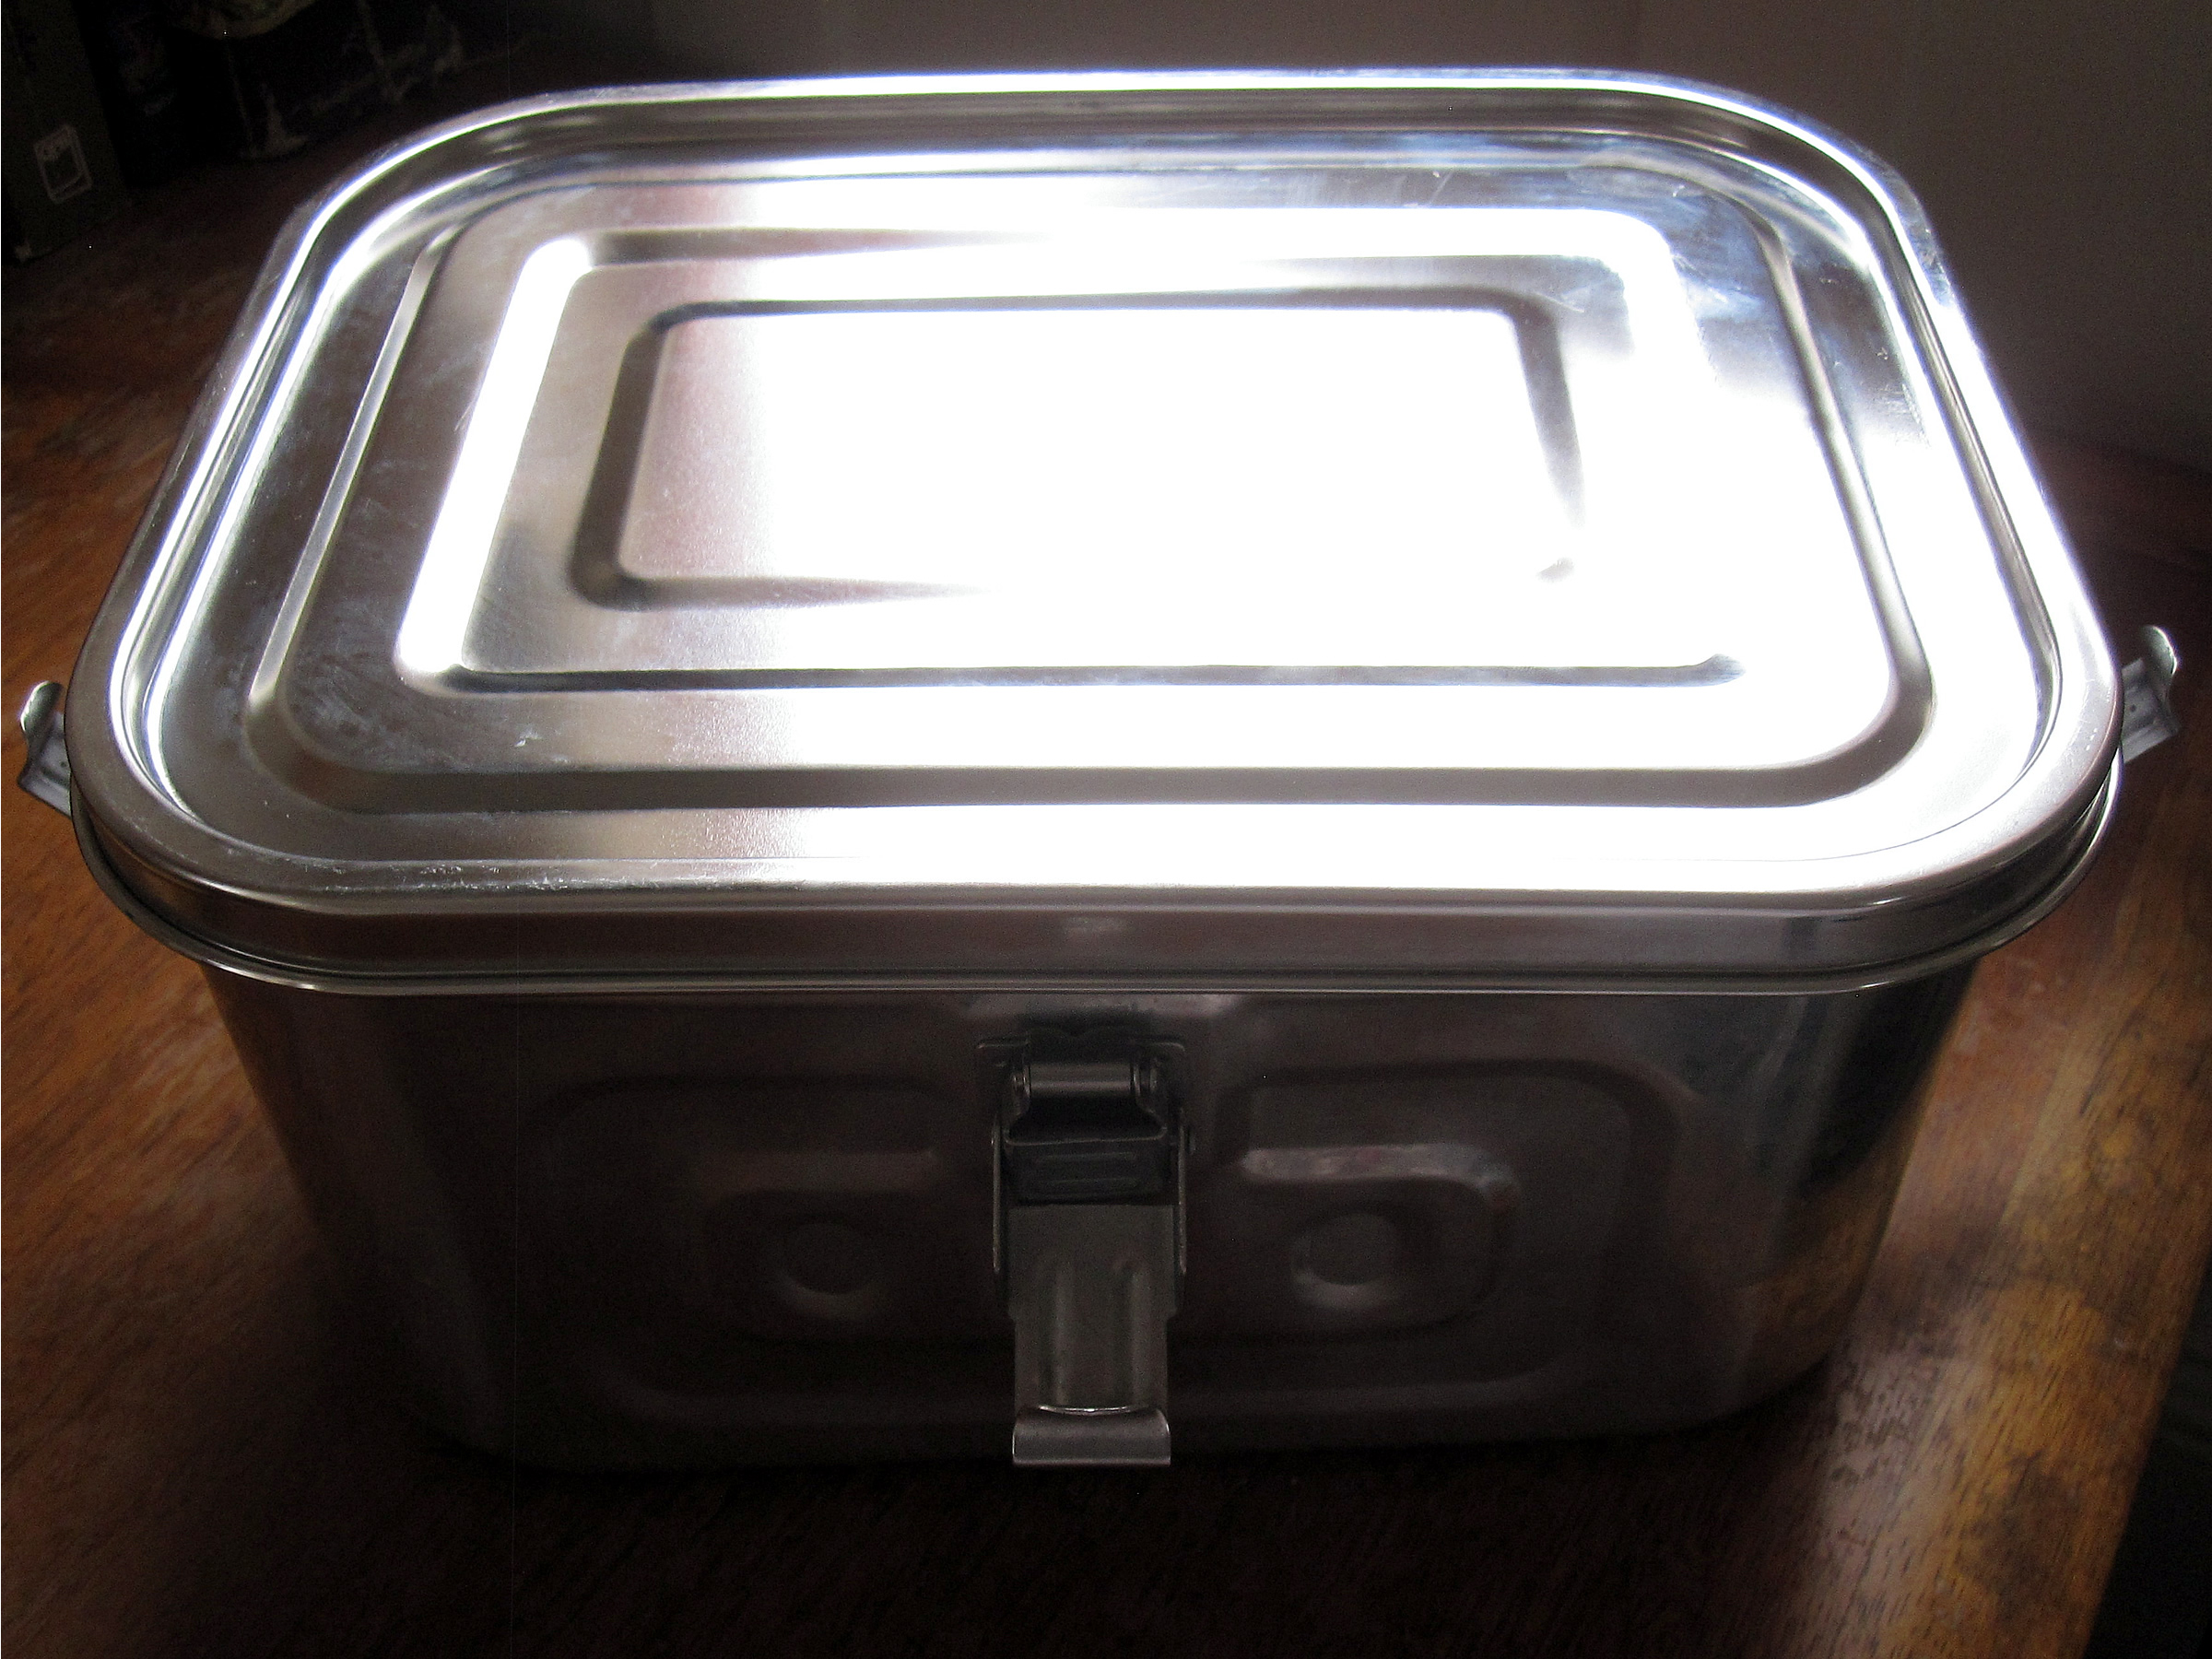 My Favorite Airtight Stainless Steel Kitchen Container My Plastic